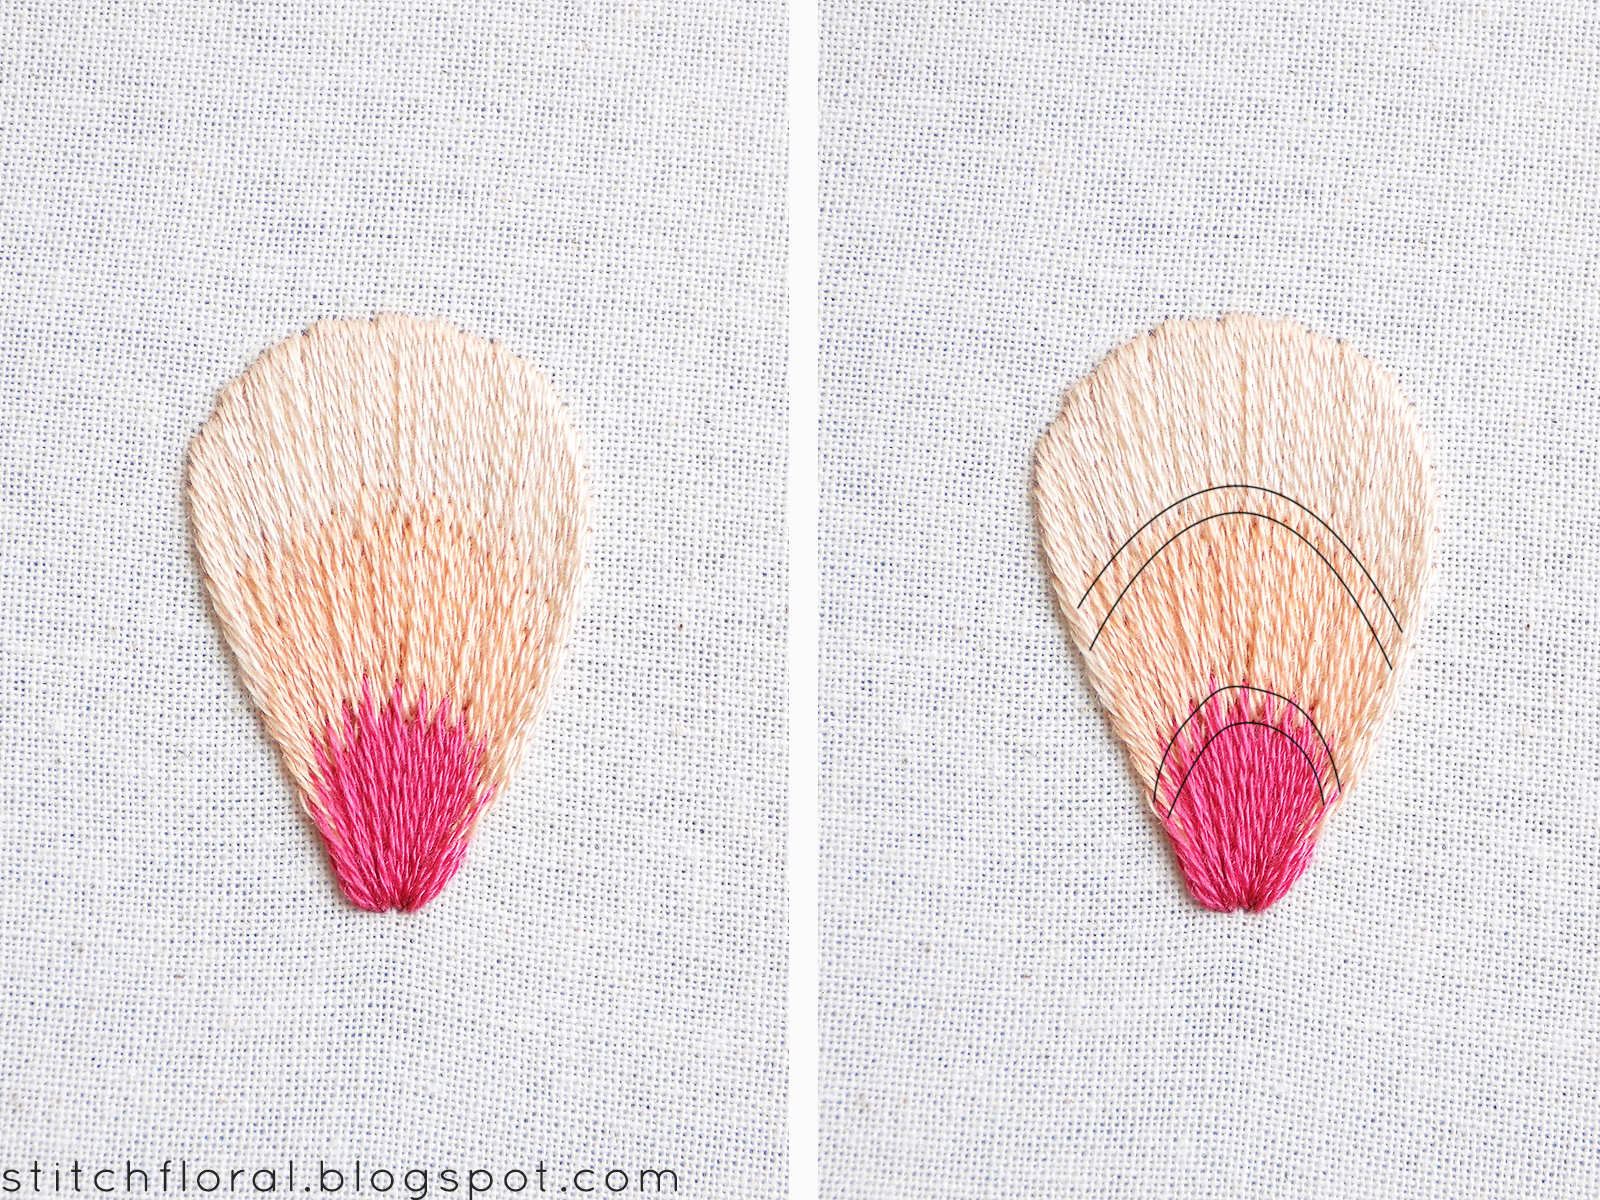 Needlepainting Tips Part 3: Levels of long and short stitches